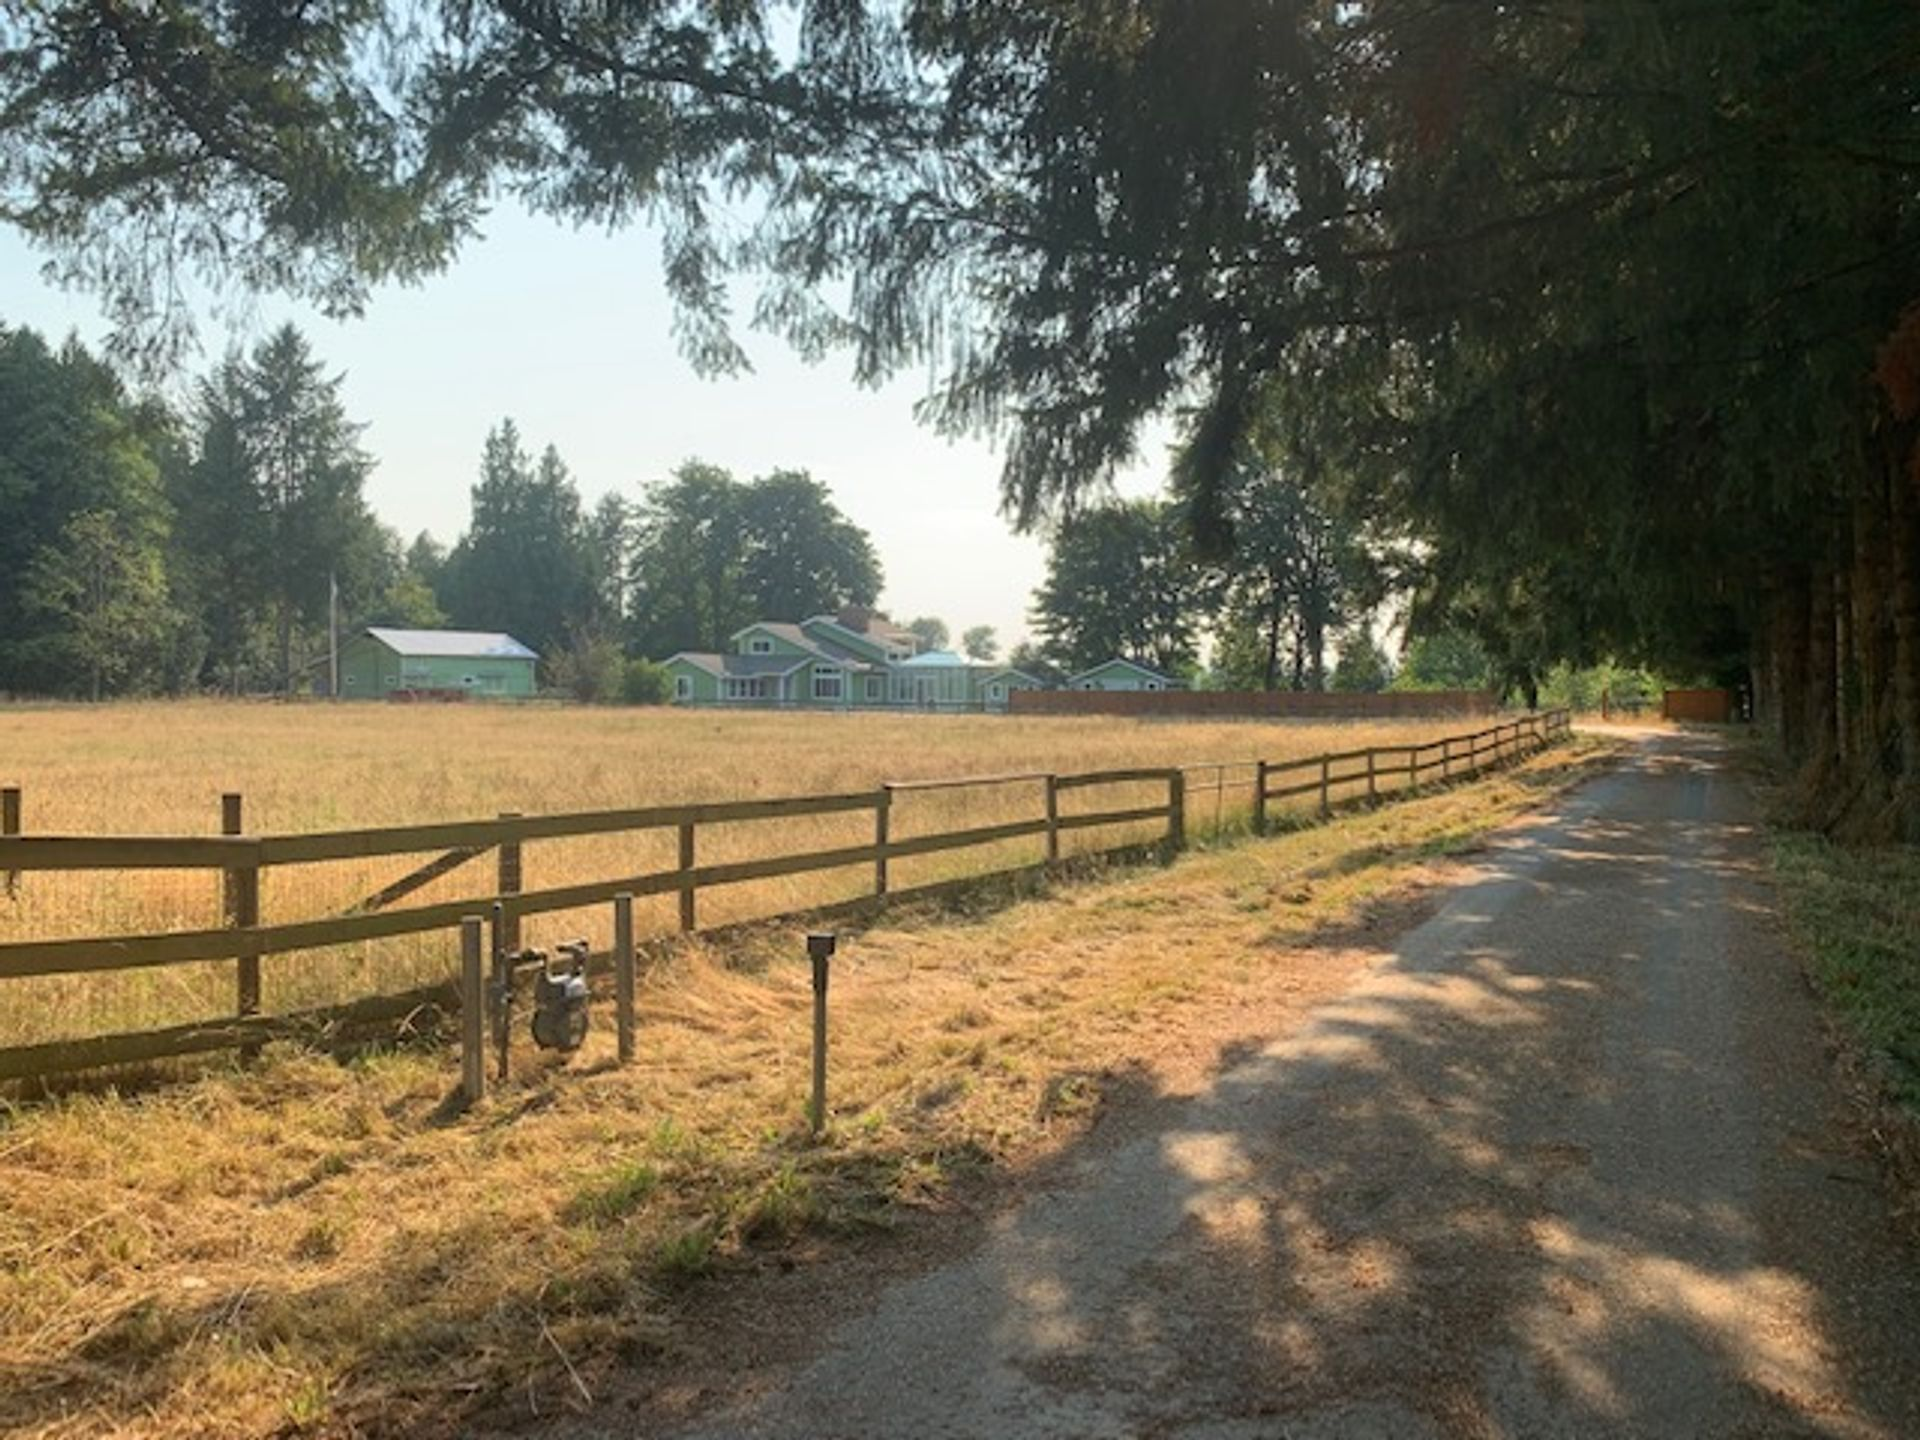 8695 Armstrong Road, County Line Glen Valley, Langley 2